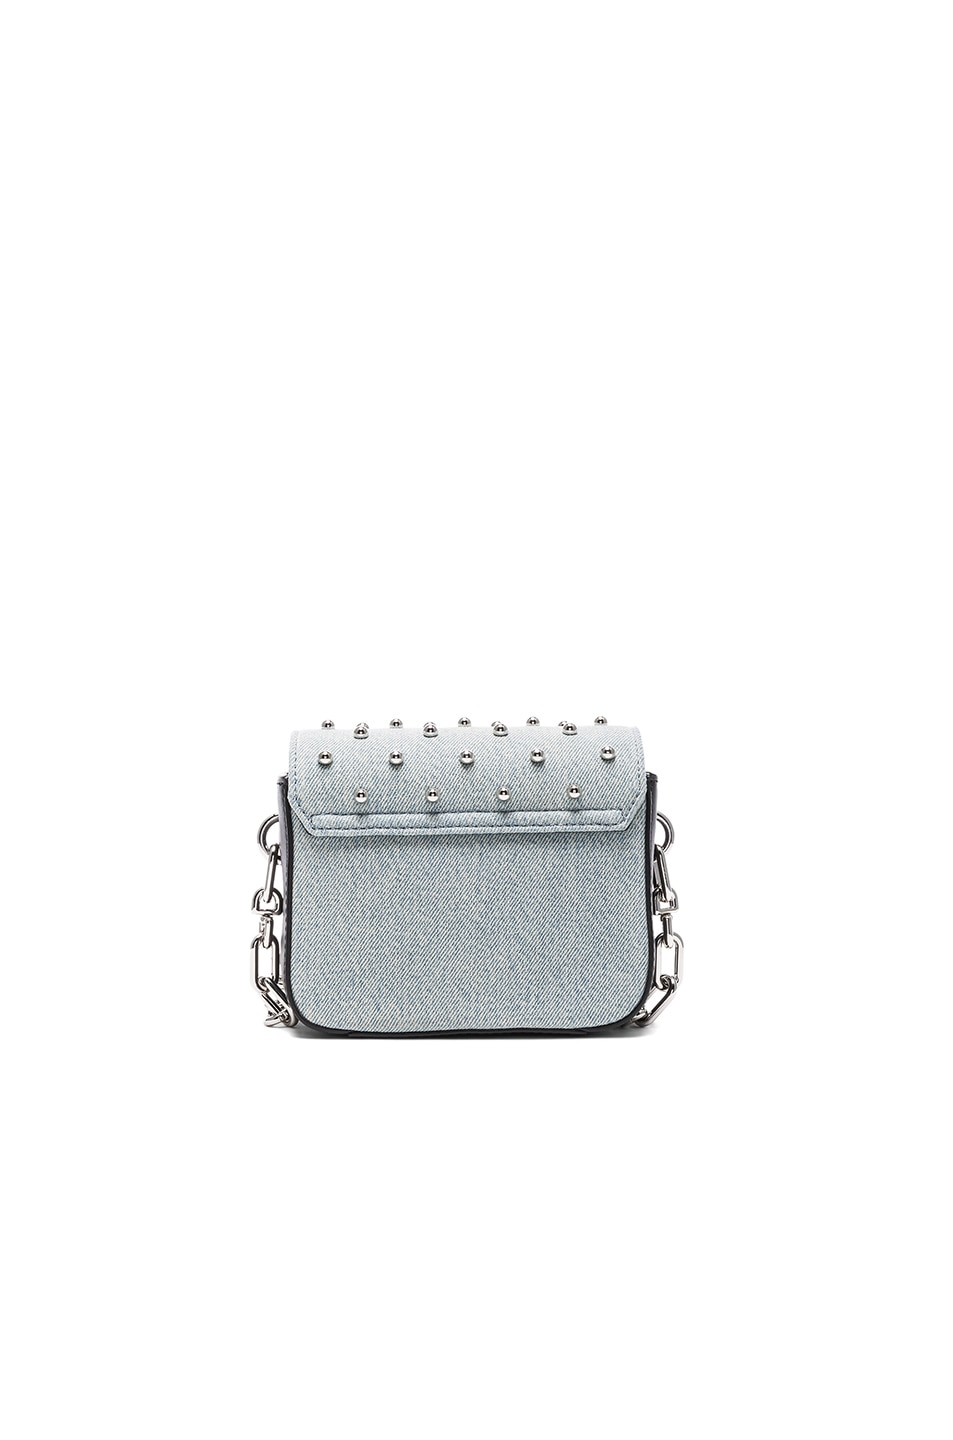 Image 2 of Alexander Wang Prism Envelope Chain Studded Bag in Denim